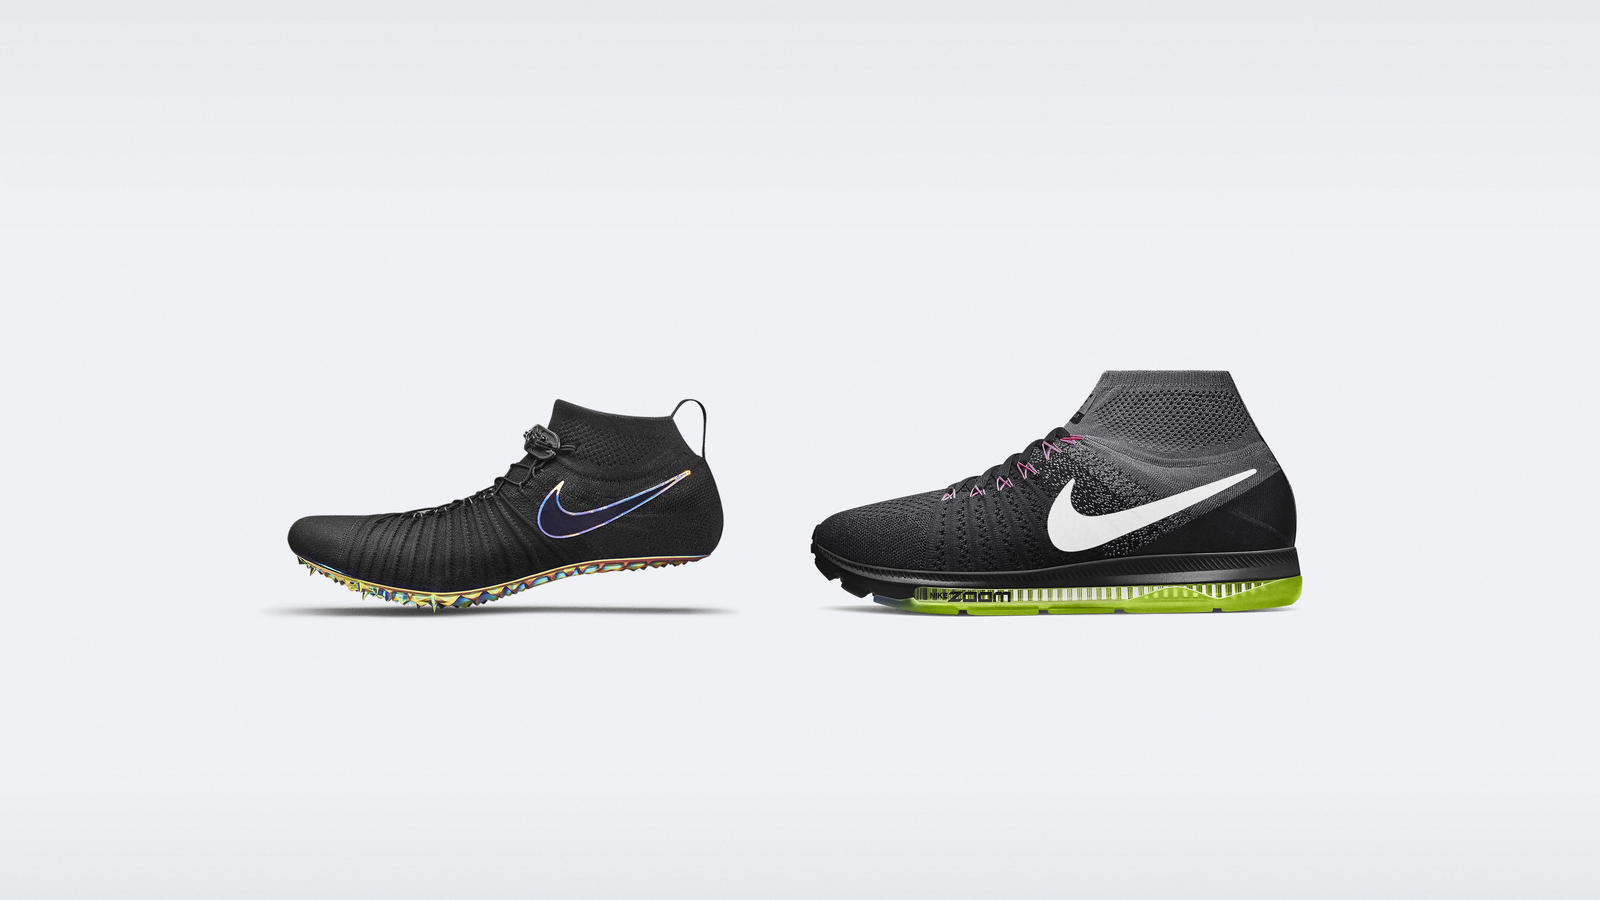 cc8c0d4700410 Nike Zoom Superfly Flyknit and Nike Zoom Air All Out